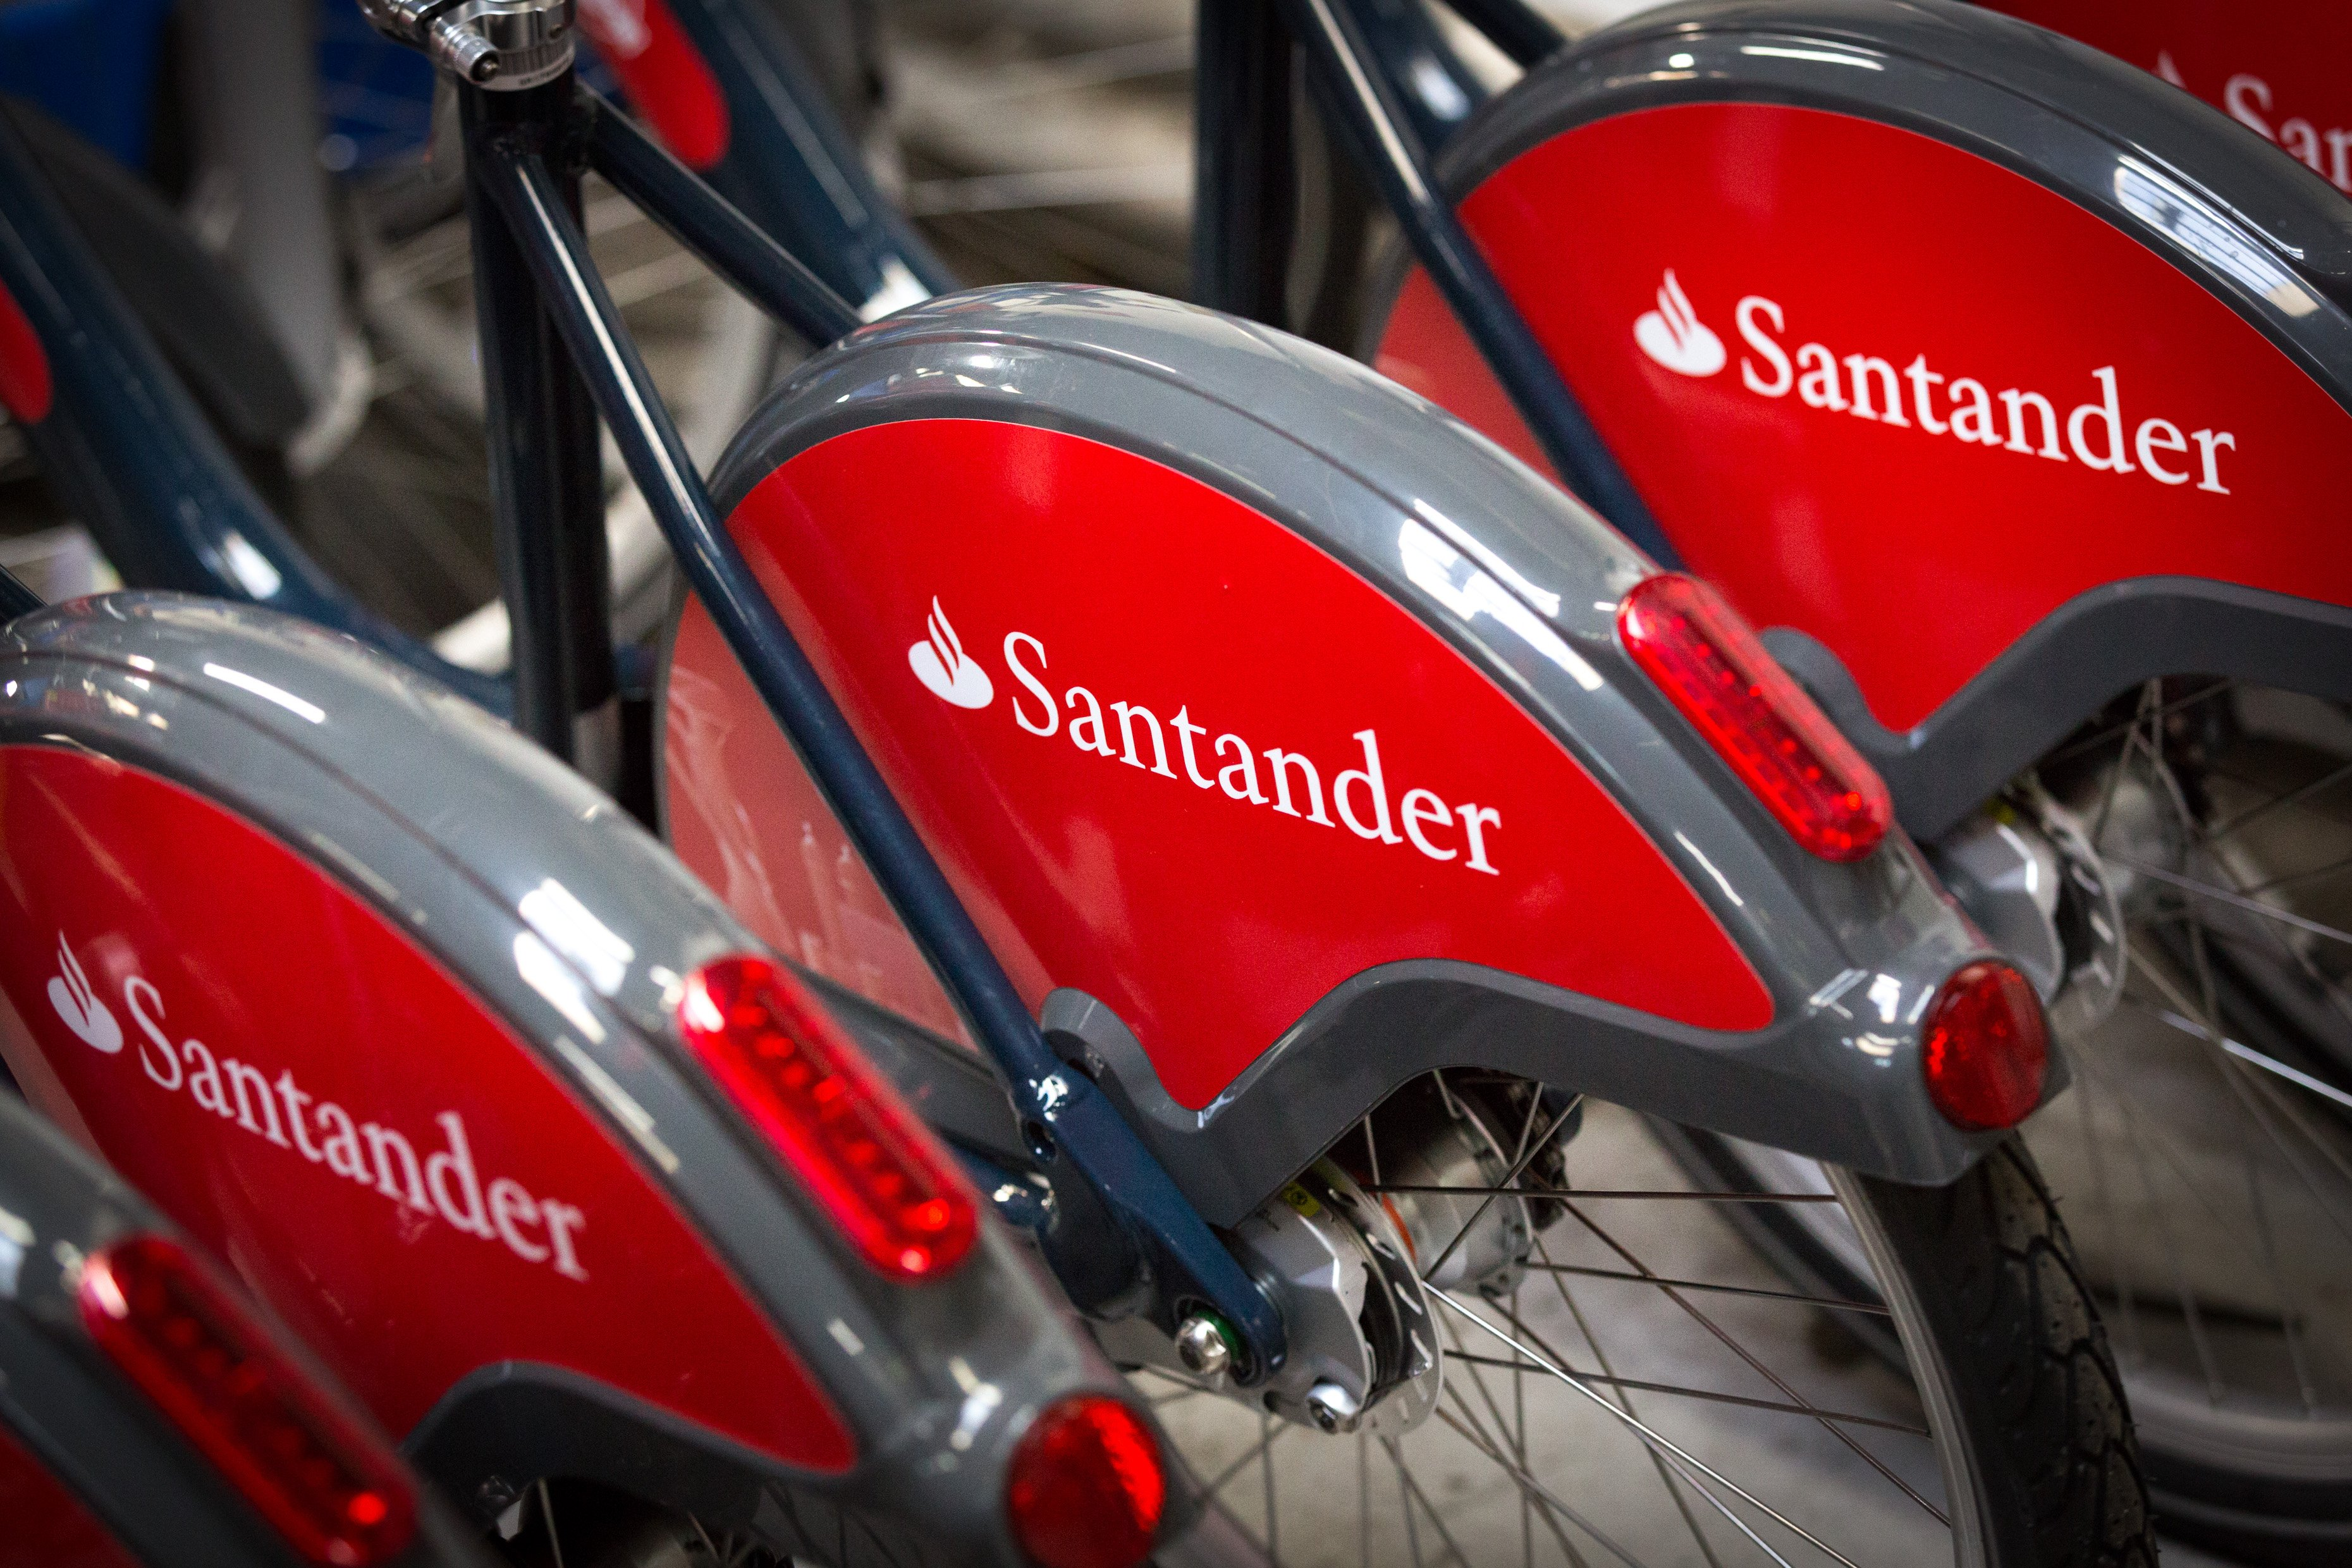 Santander cycle scheme sees record month with 1.2m hires  89e14527e